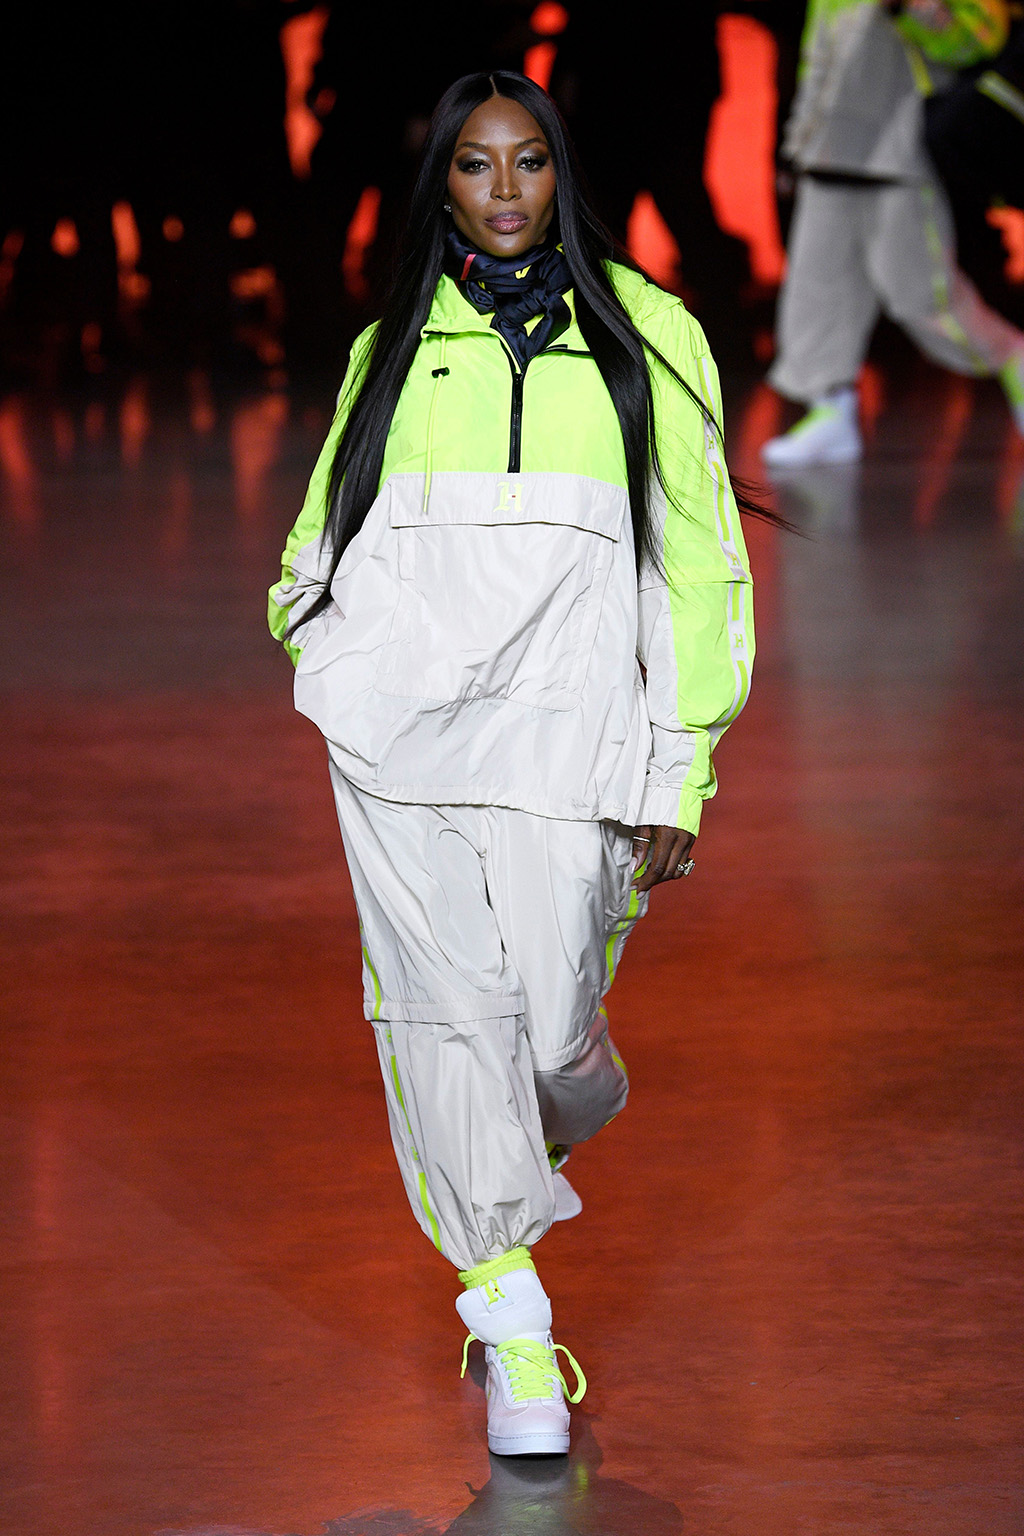 Naomi Campbell , runway, tracksuit, sneakers, on the catwalkTommy Hilfiger show, Runway, Fall Winter 2020, London Fashion Week, UK - 16 Feb 2020